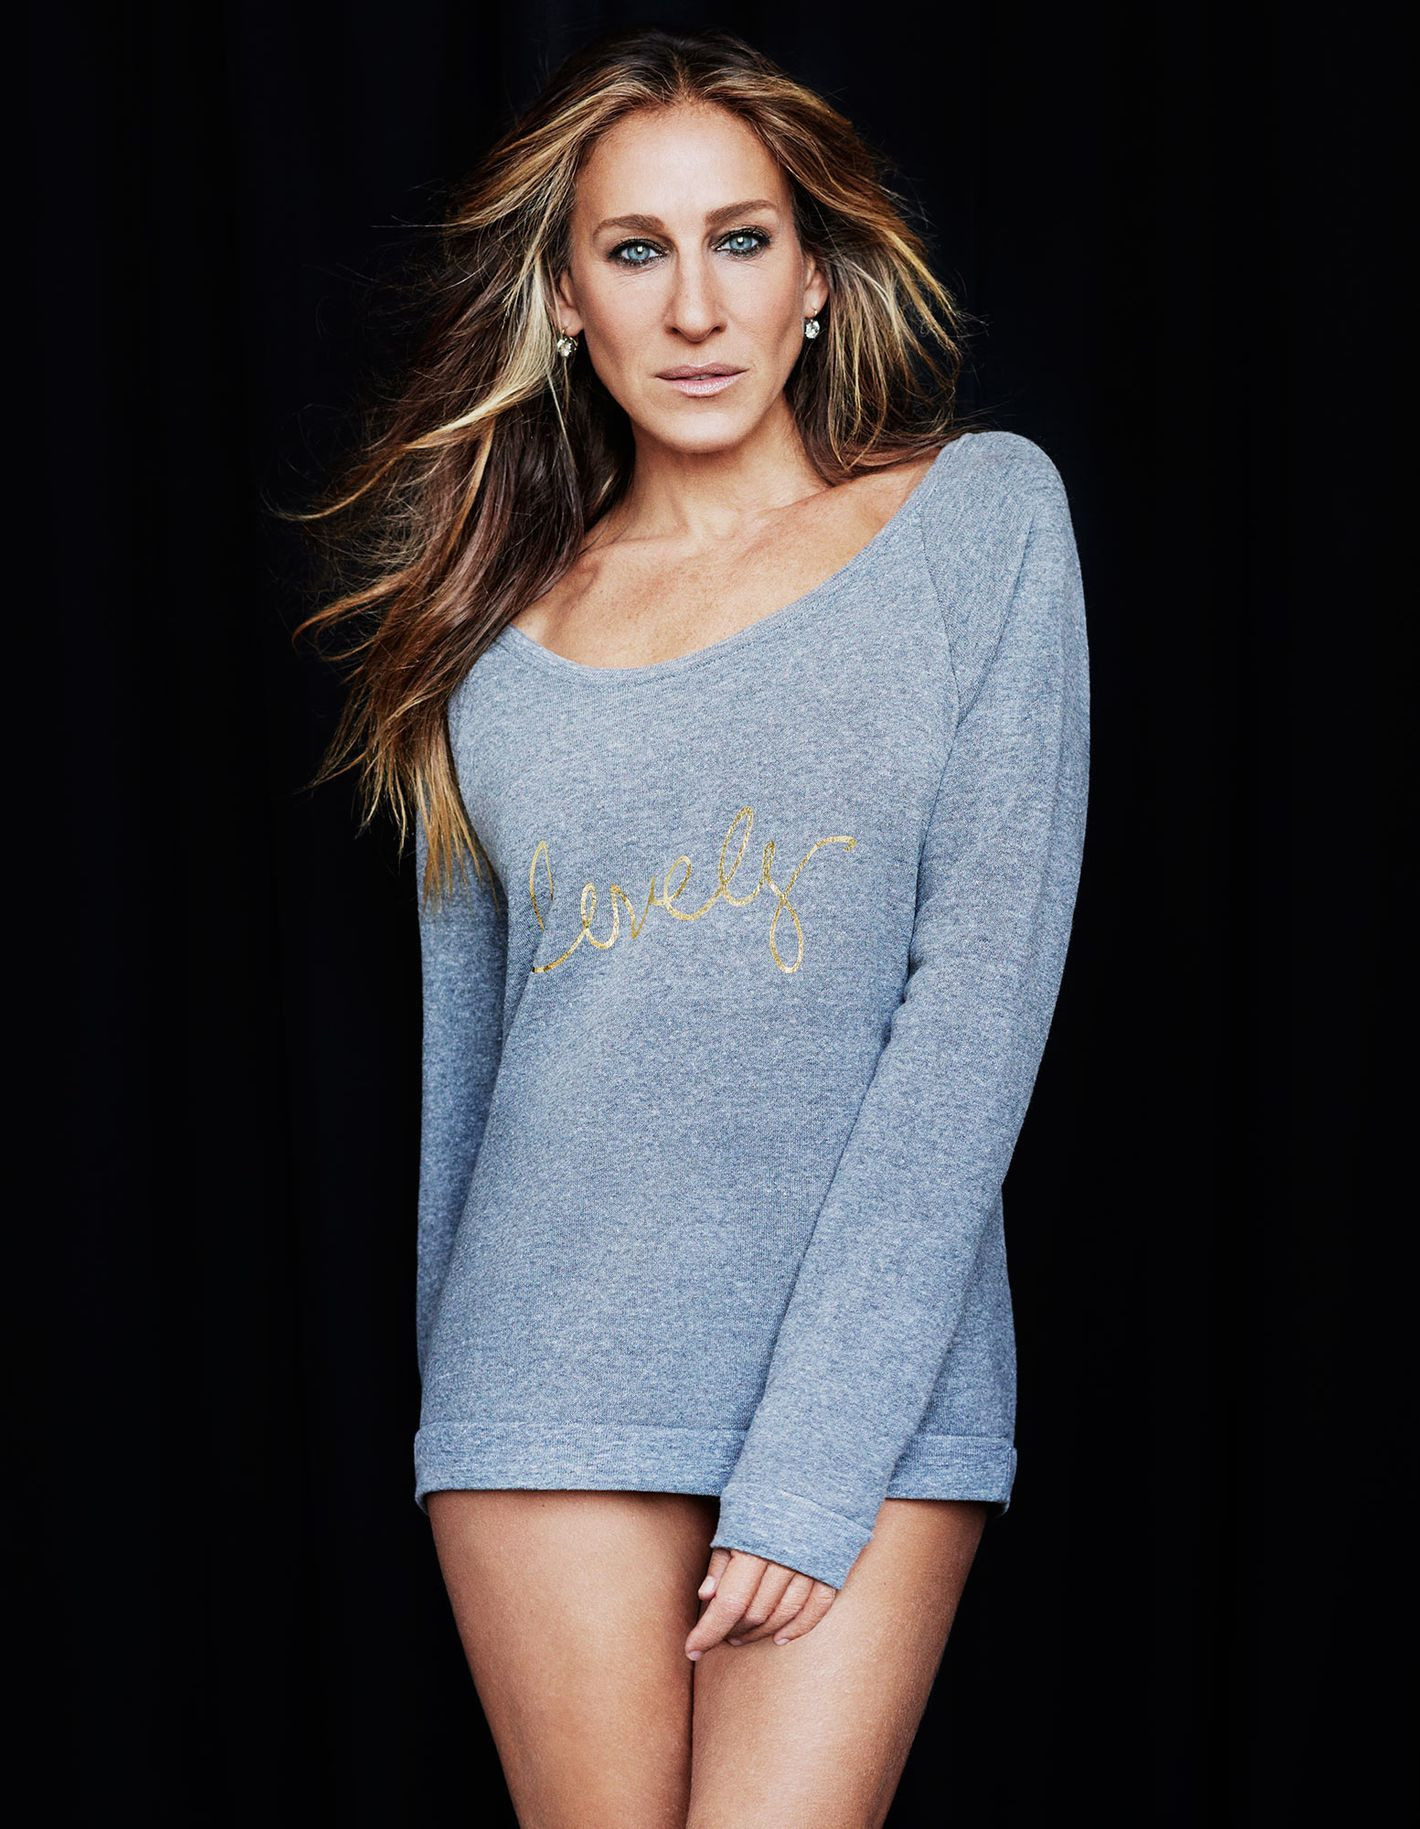 Nude sexy pictures of sarah jessica parker #4